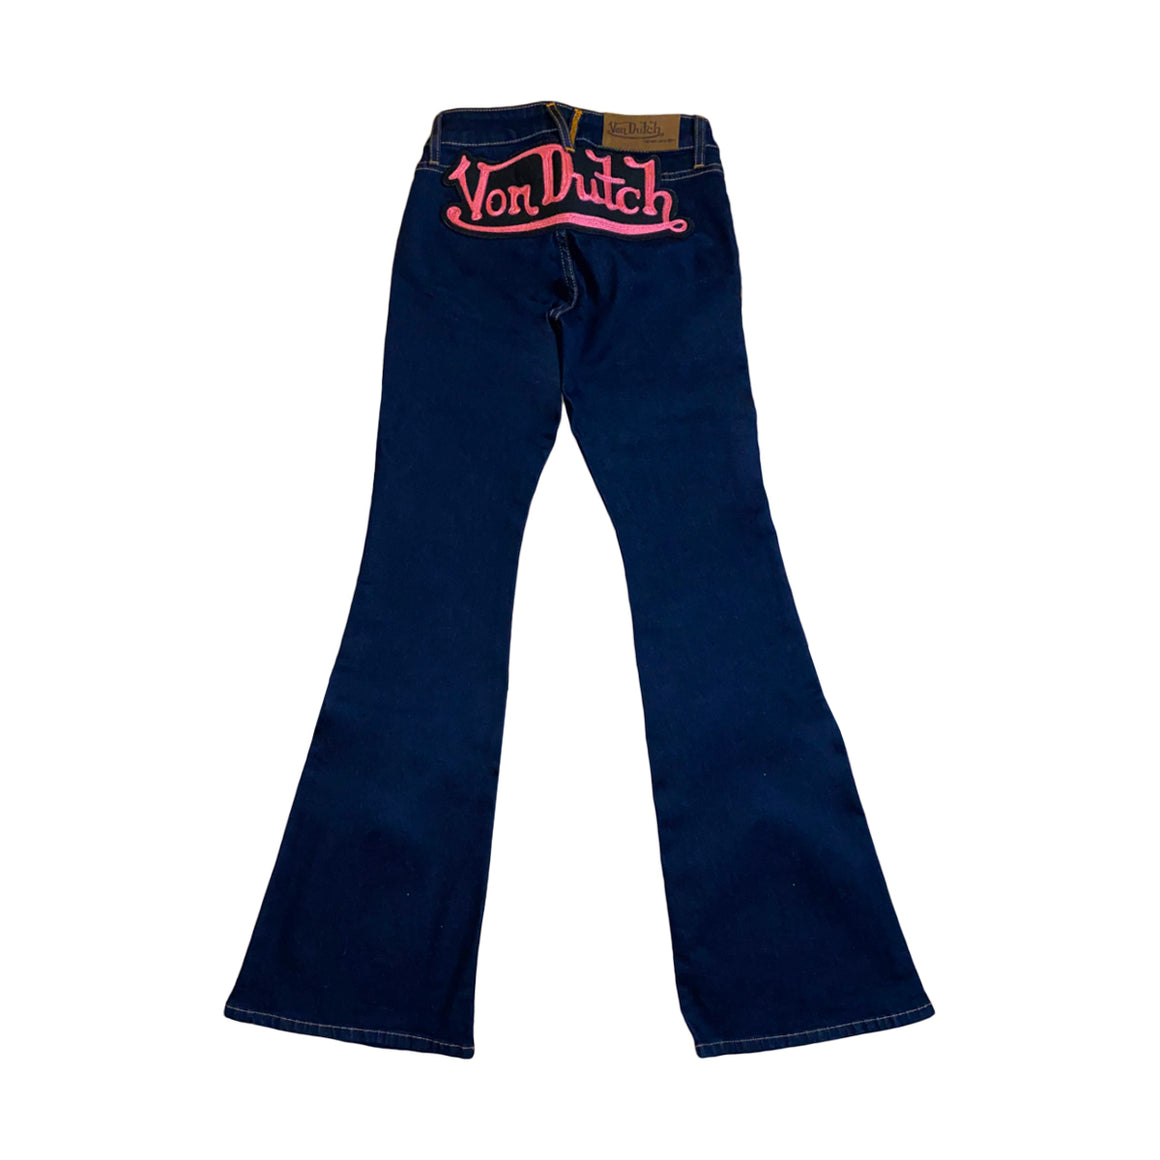 EXCLUSIVE MONOPATCH DENIM JEANS